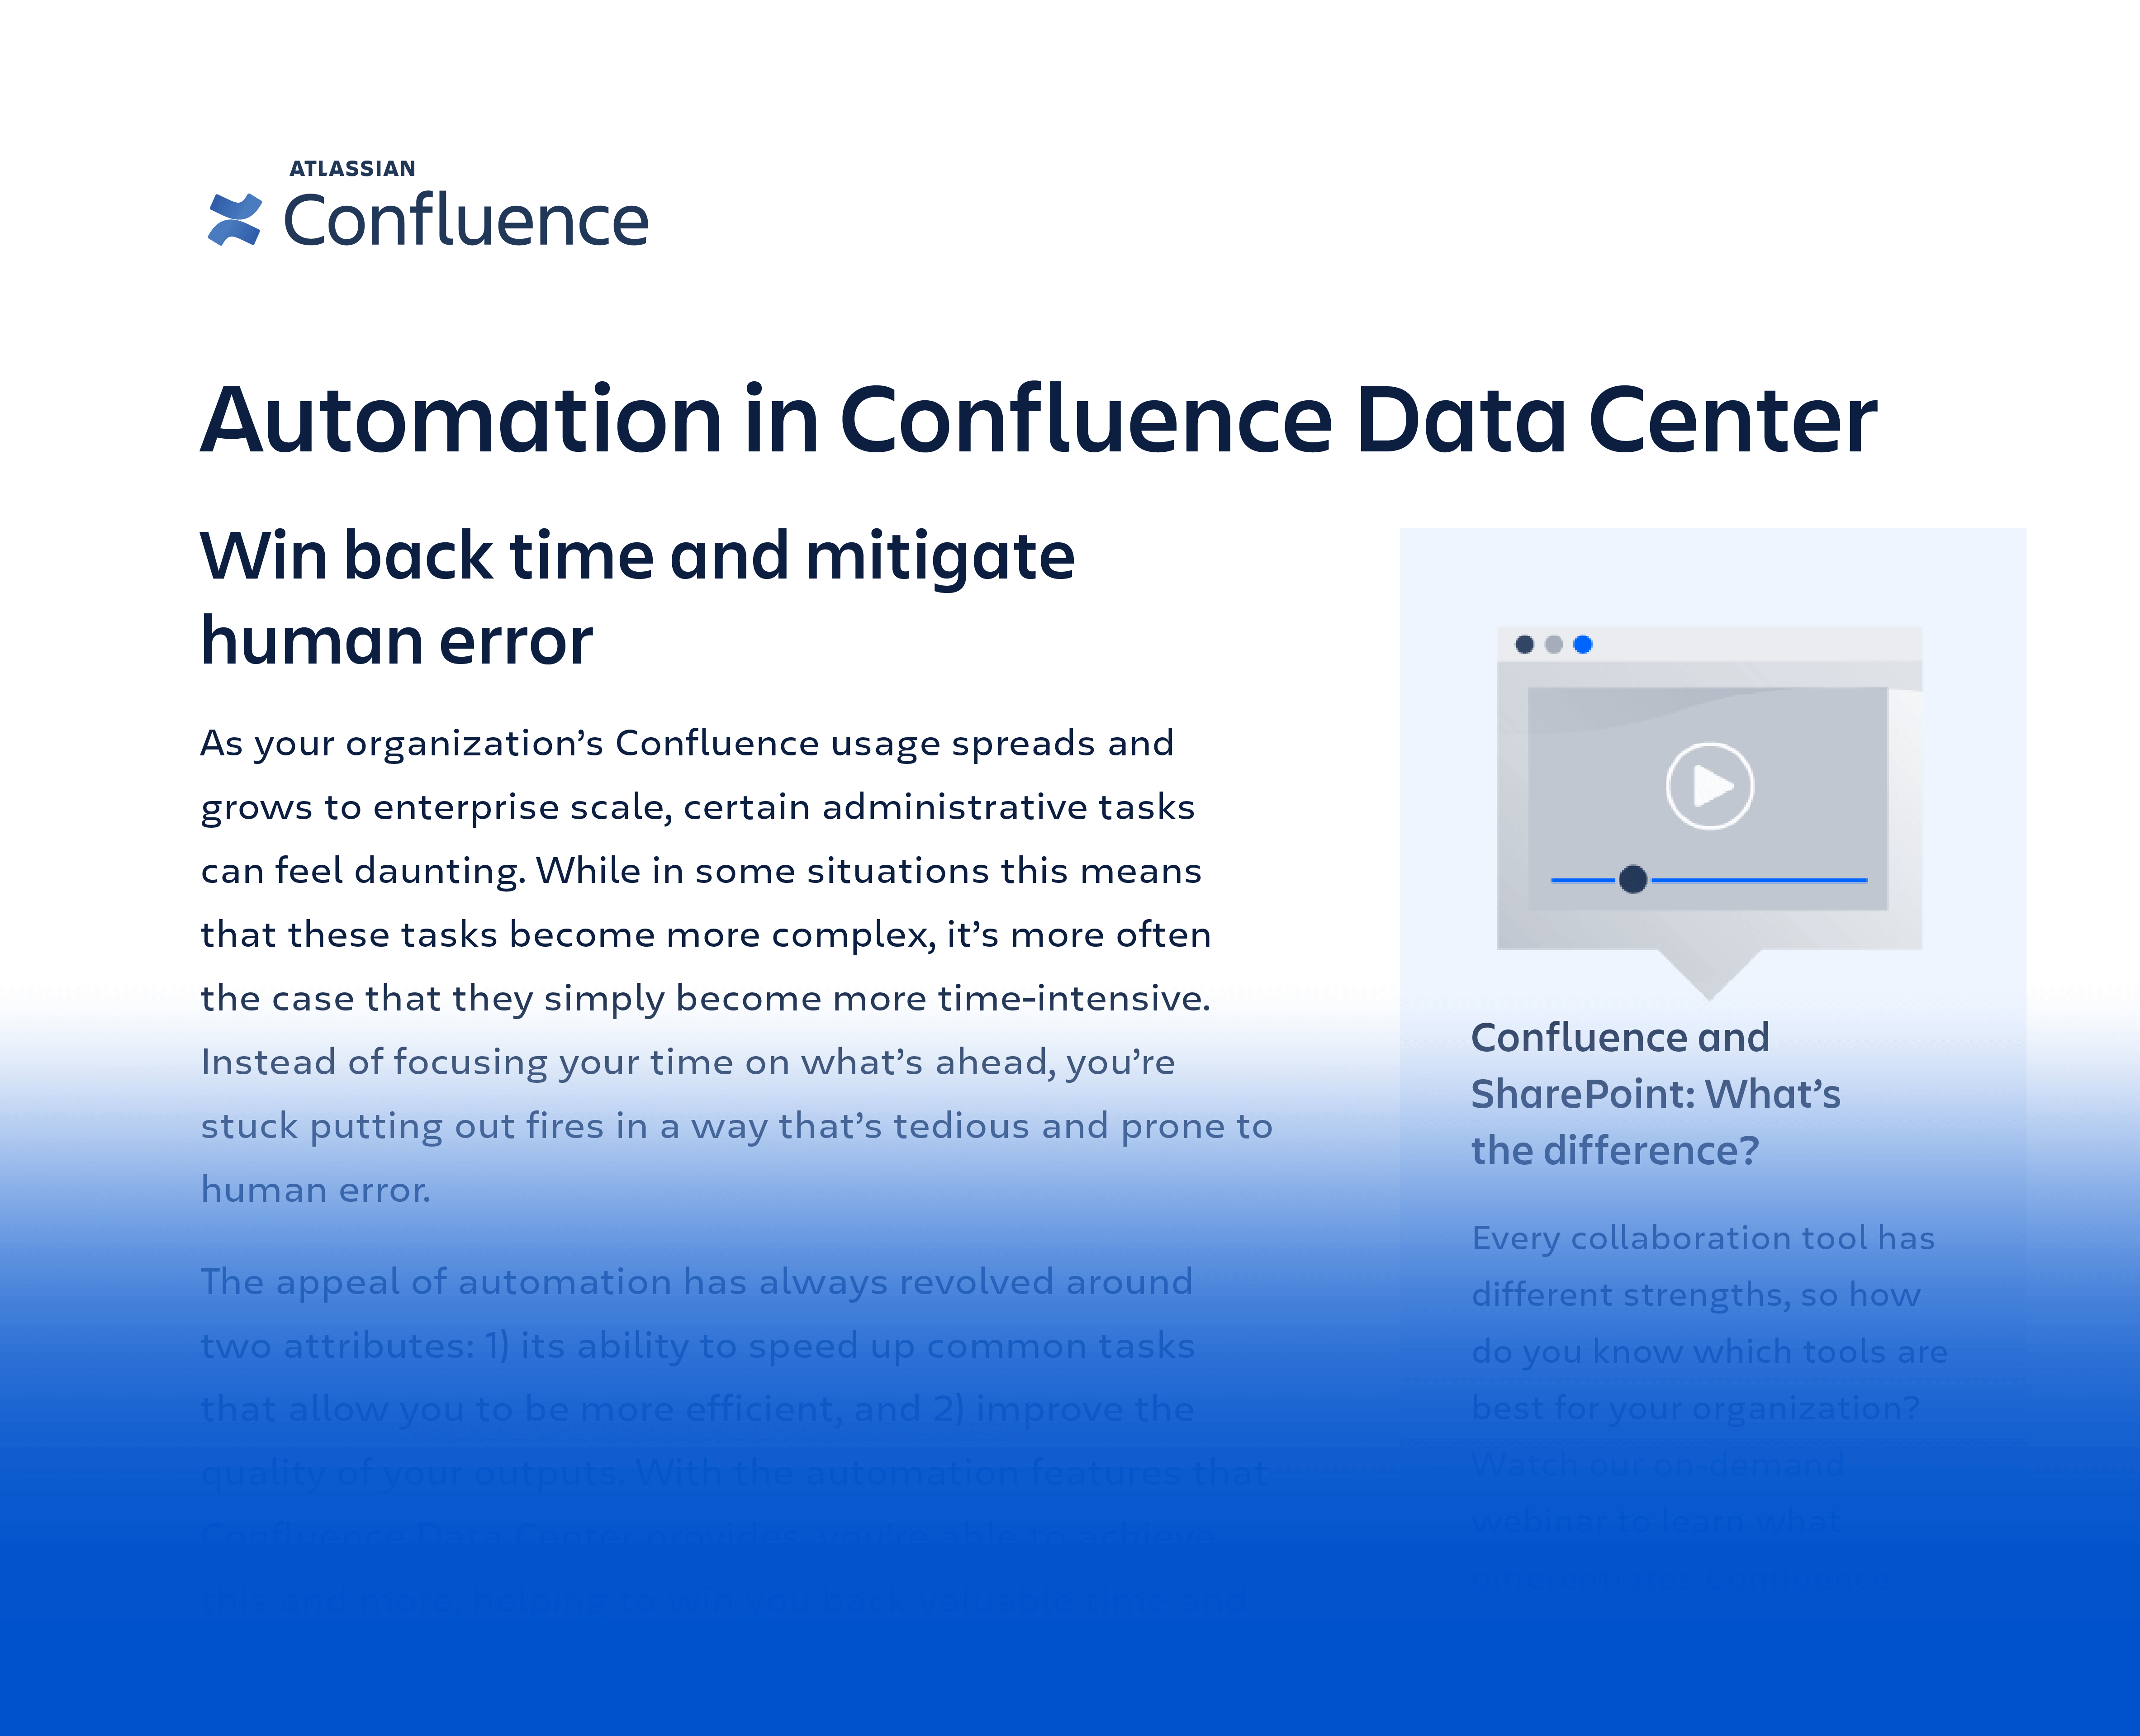 Data sheet: Automation in Confluence Data Center